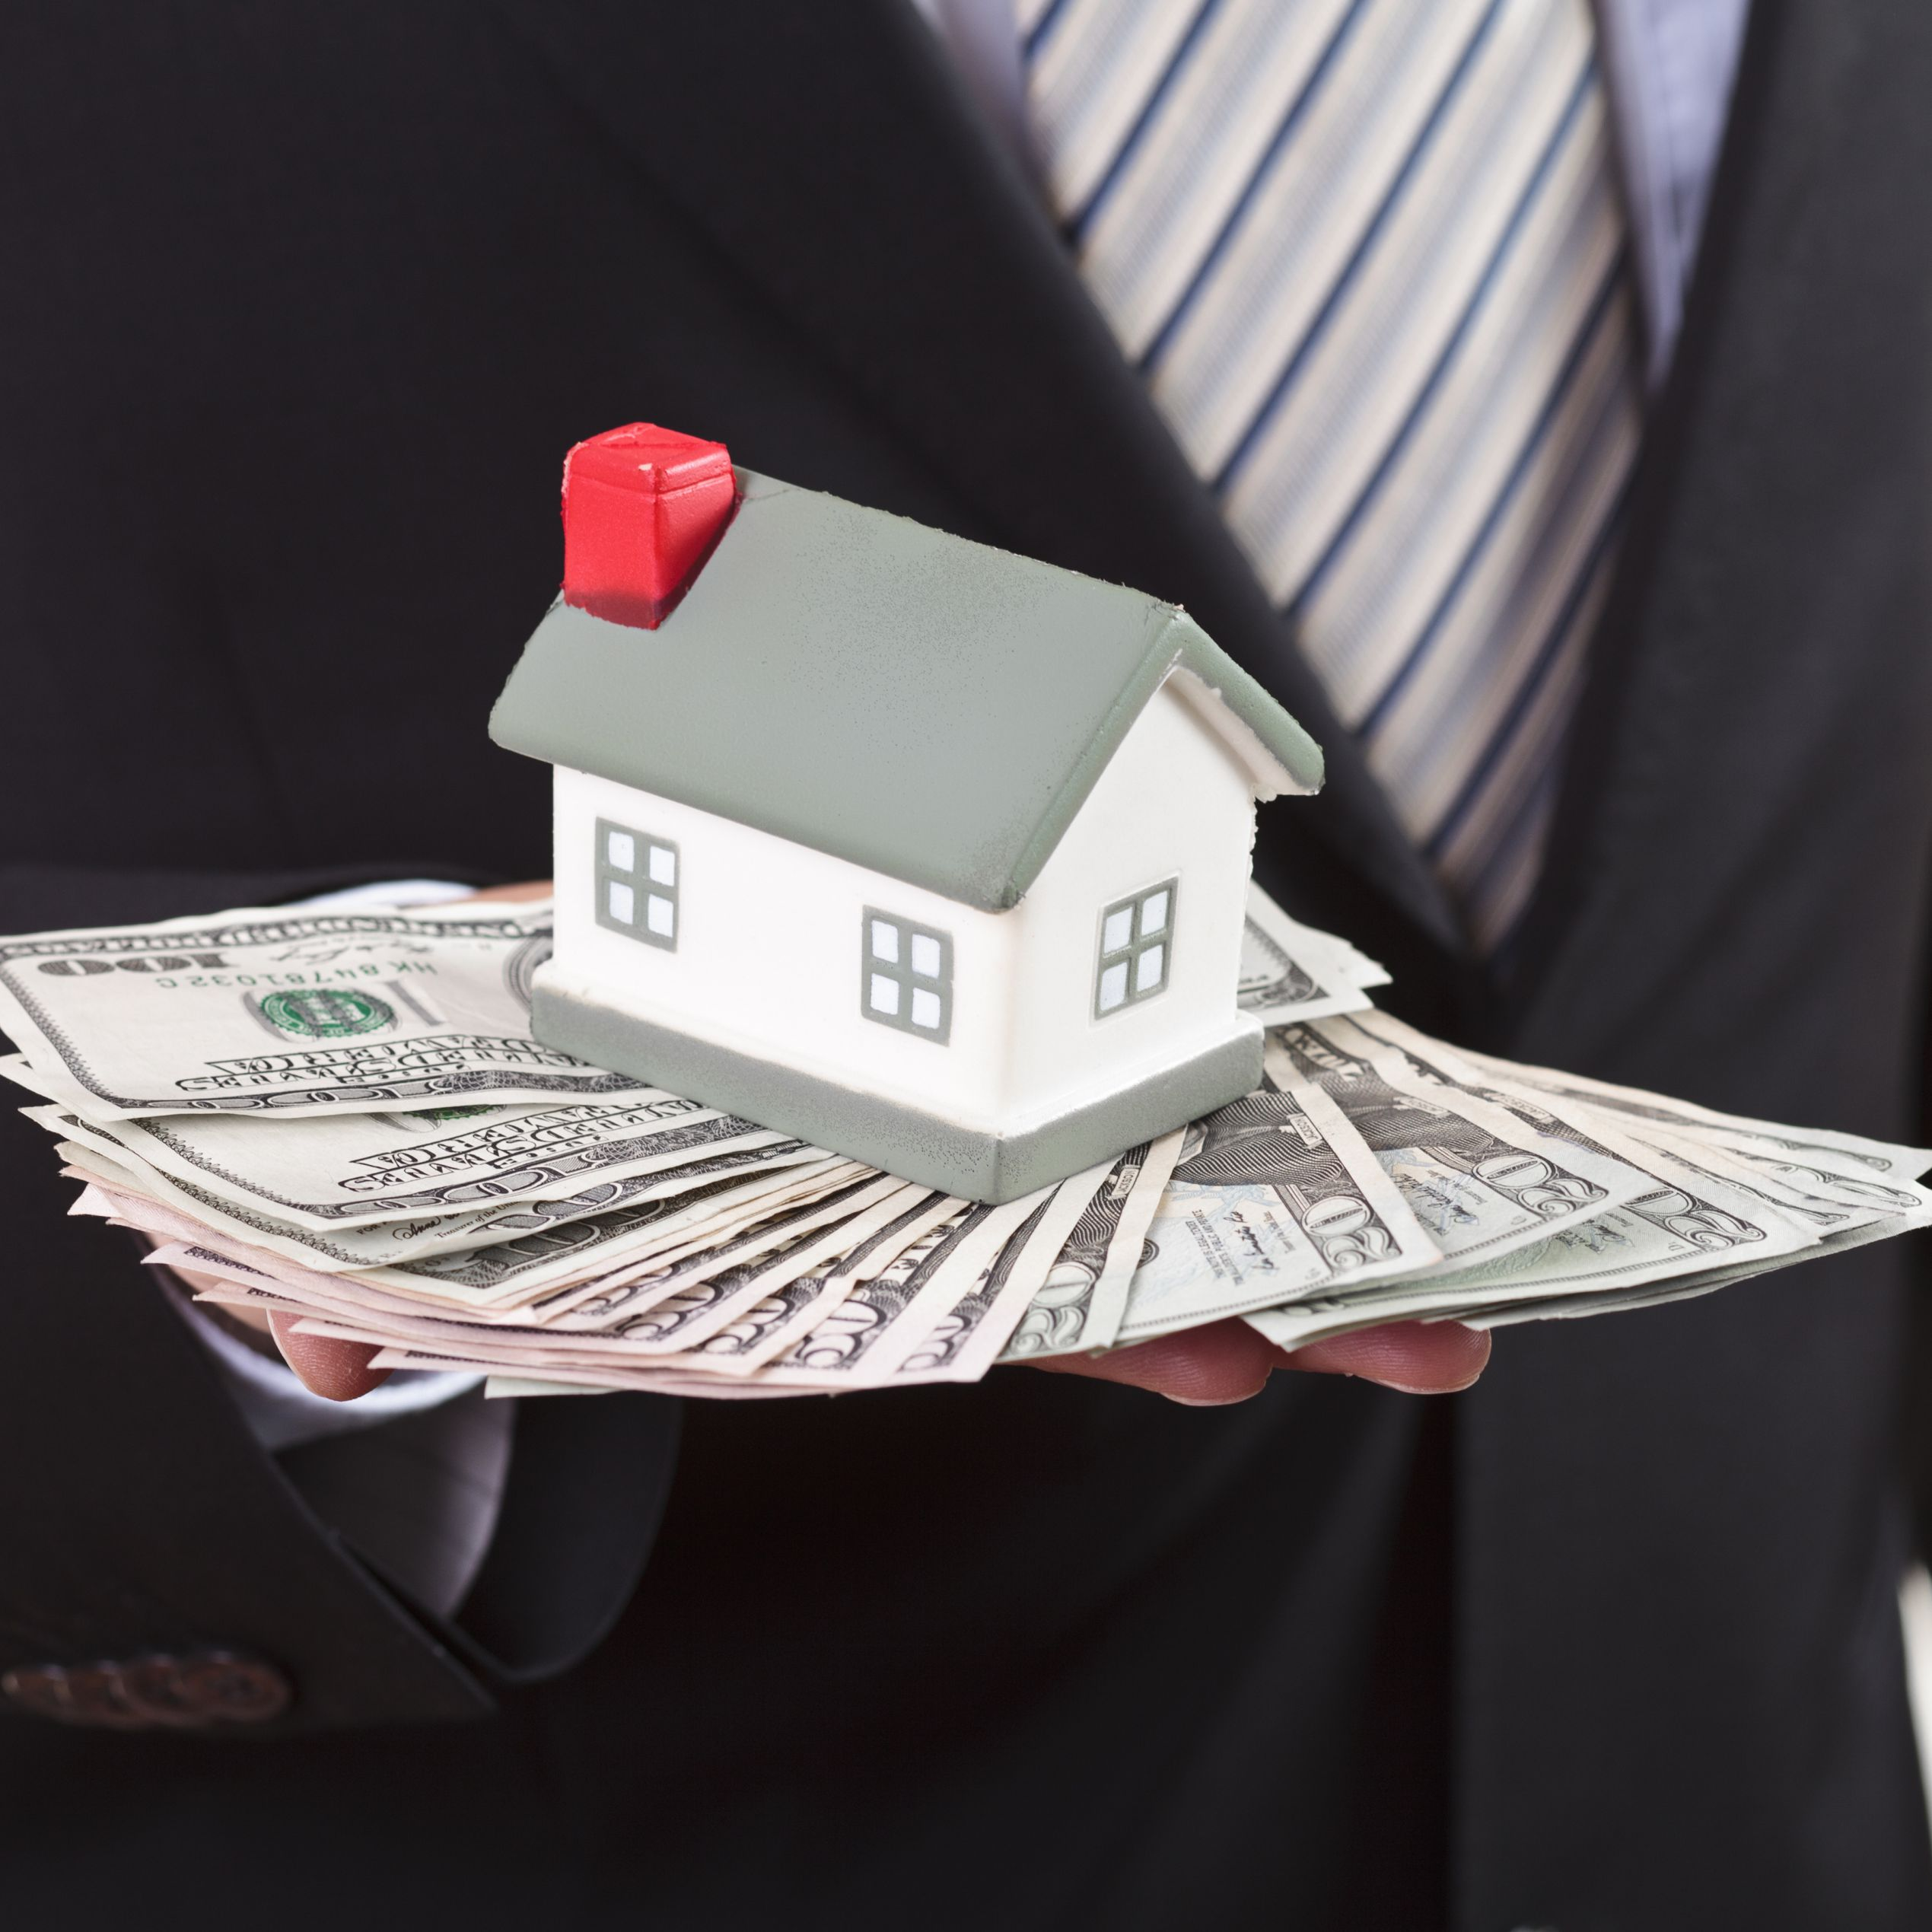 Comparing 20-year Mortgages with Other Mortgage Products